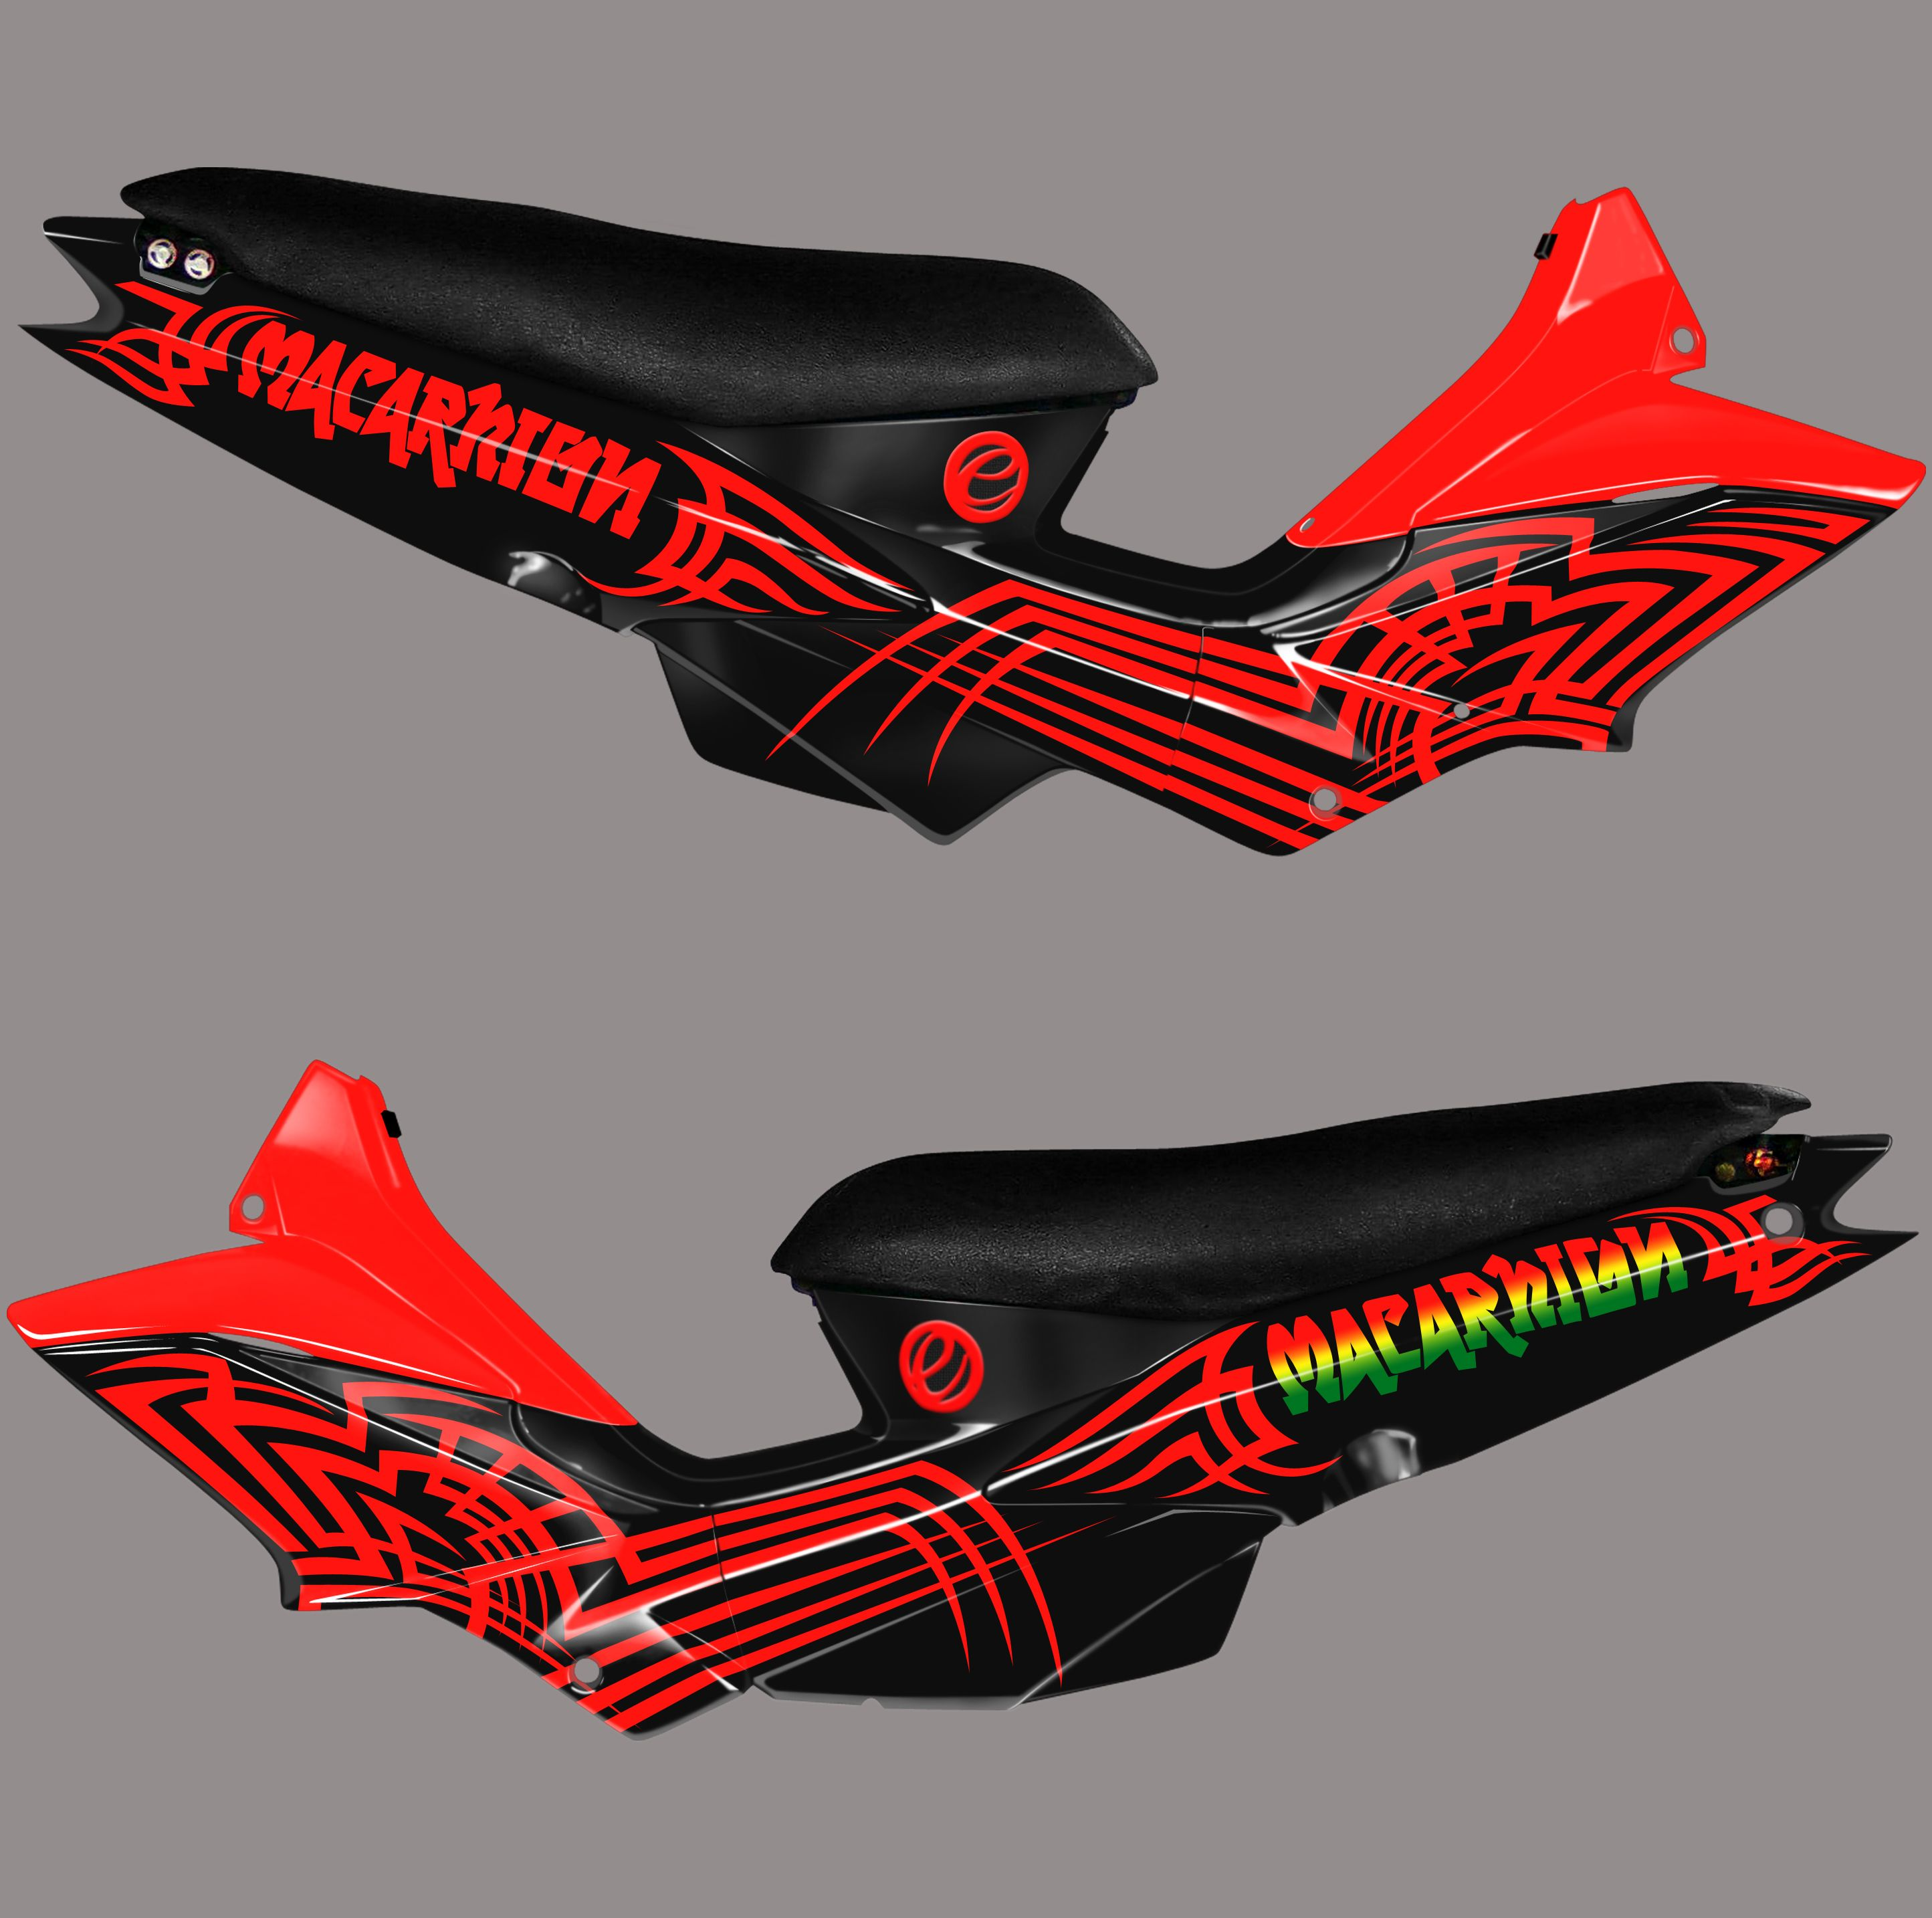 Motard Xrm 125 Best Sticker Disgn Custom Sticker